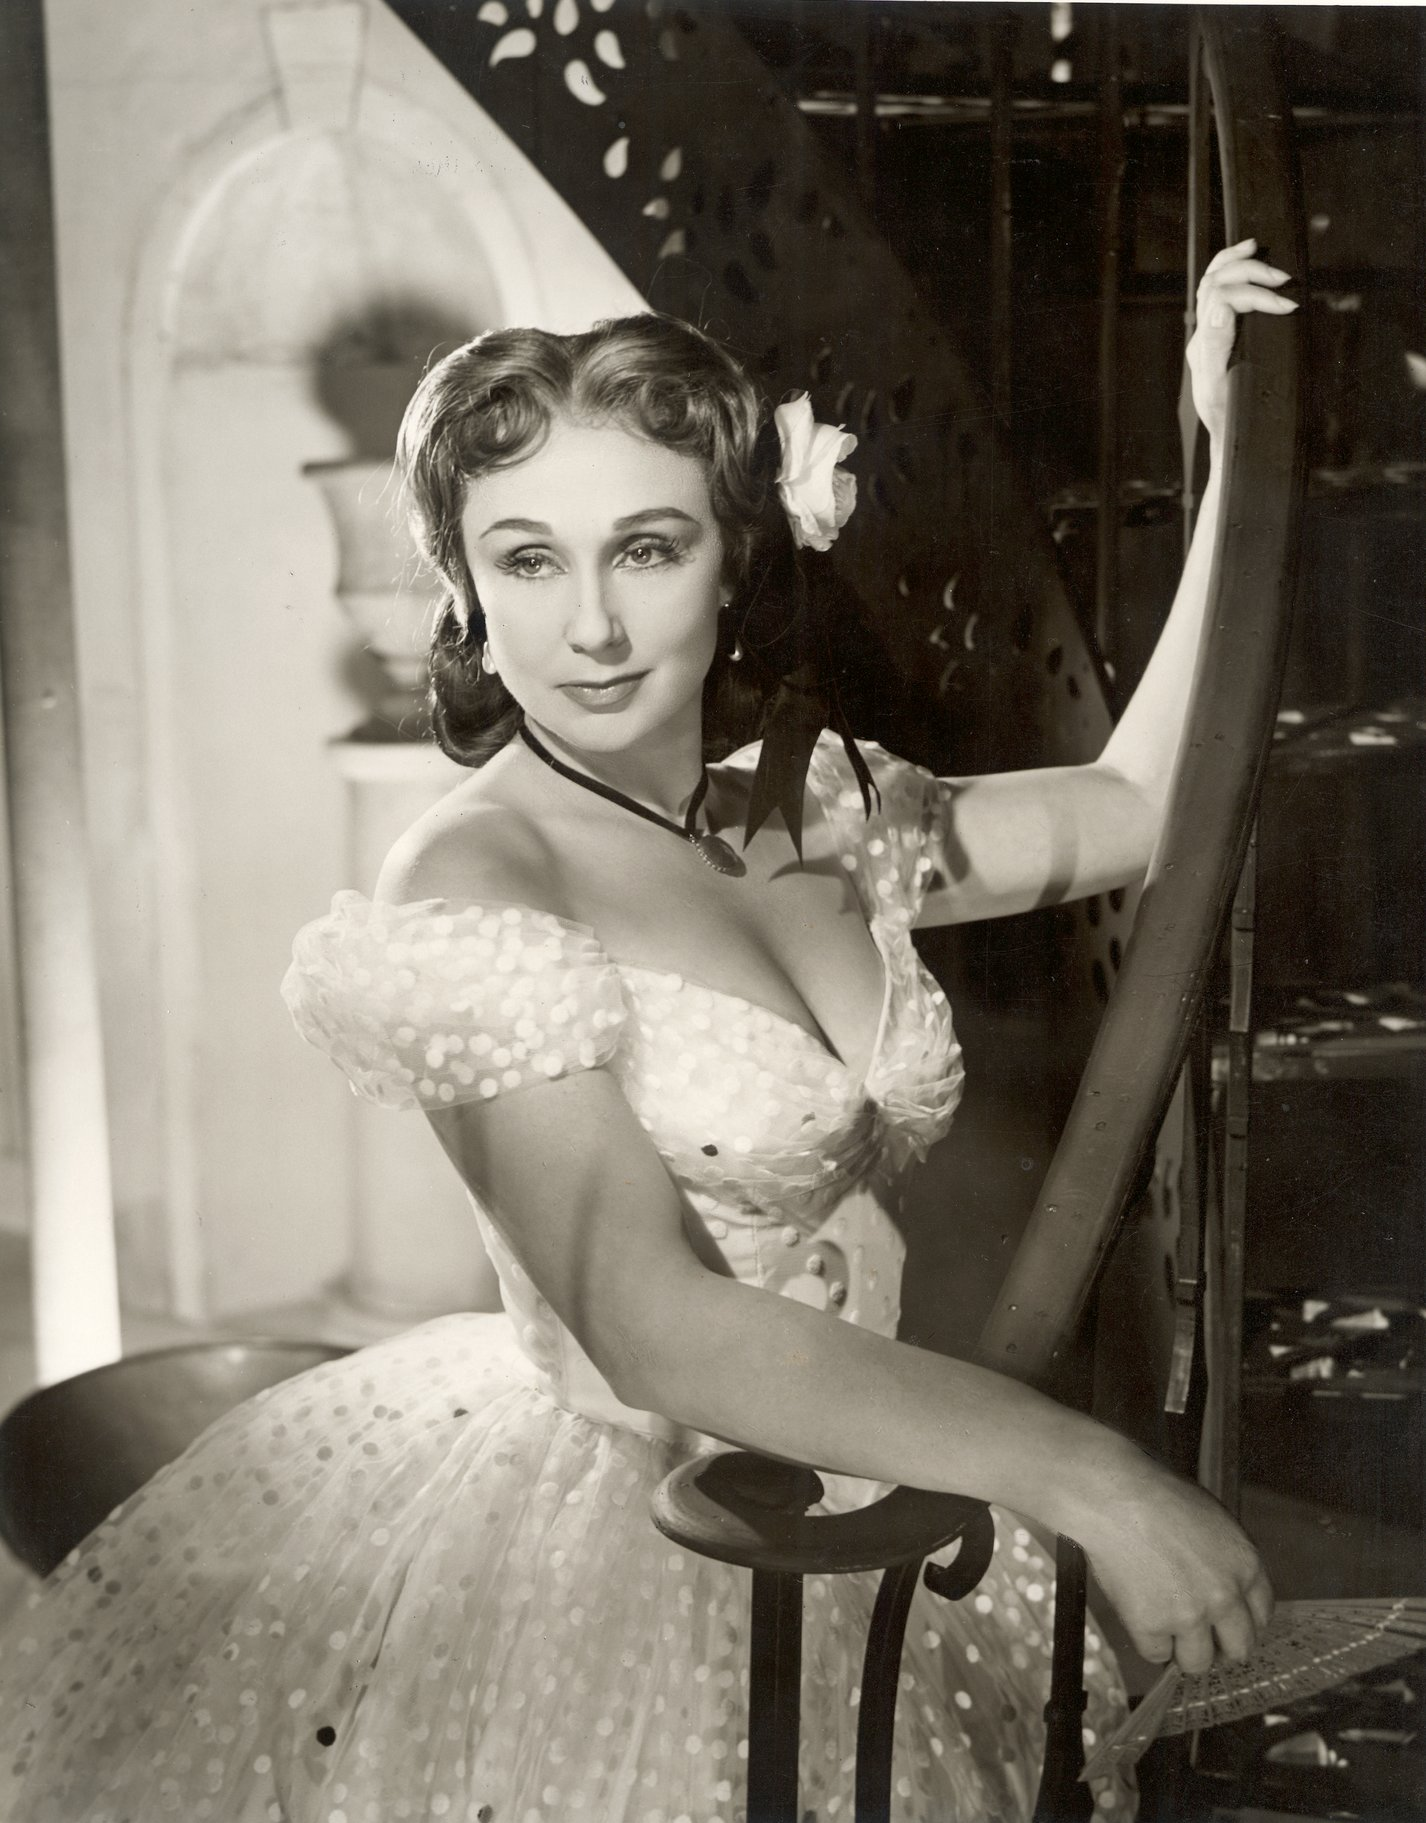 Googie Withers as Beatrice, wearing a low cut white dress and a white rose in her hair.